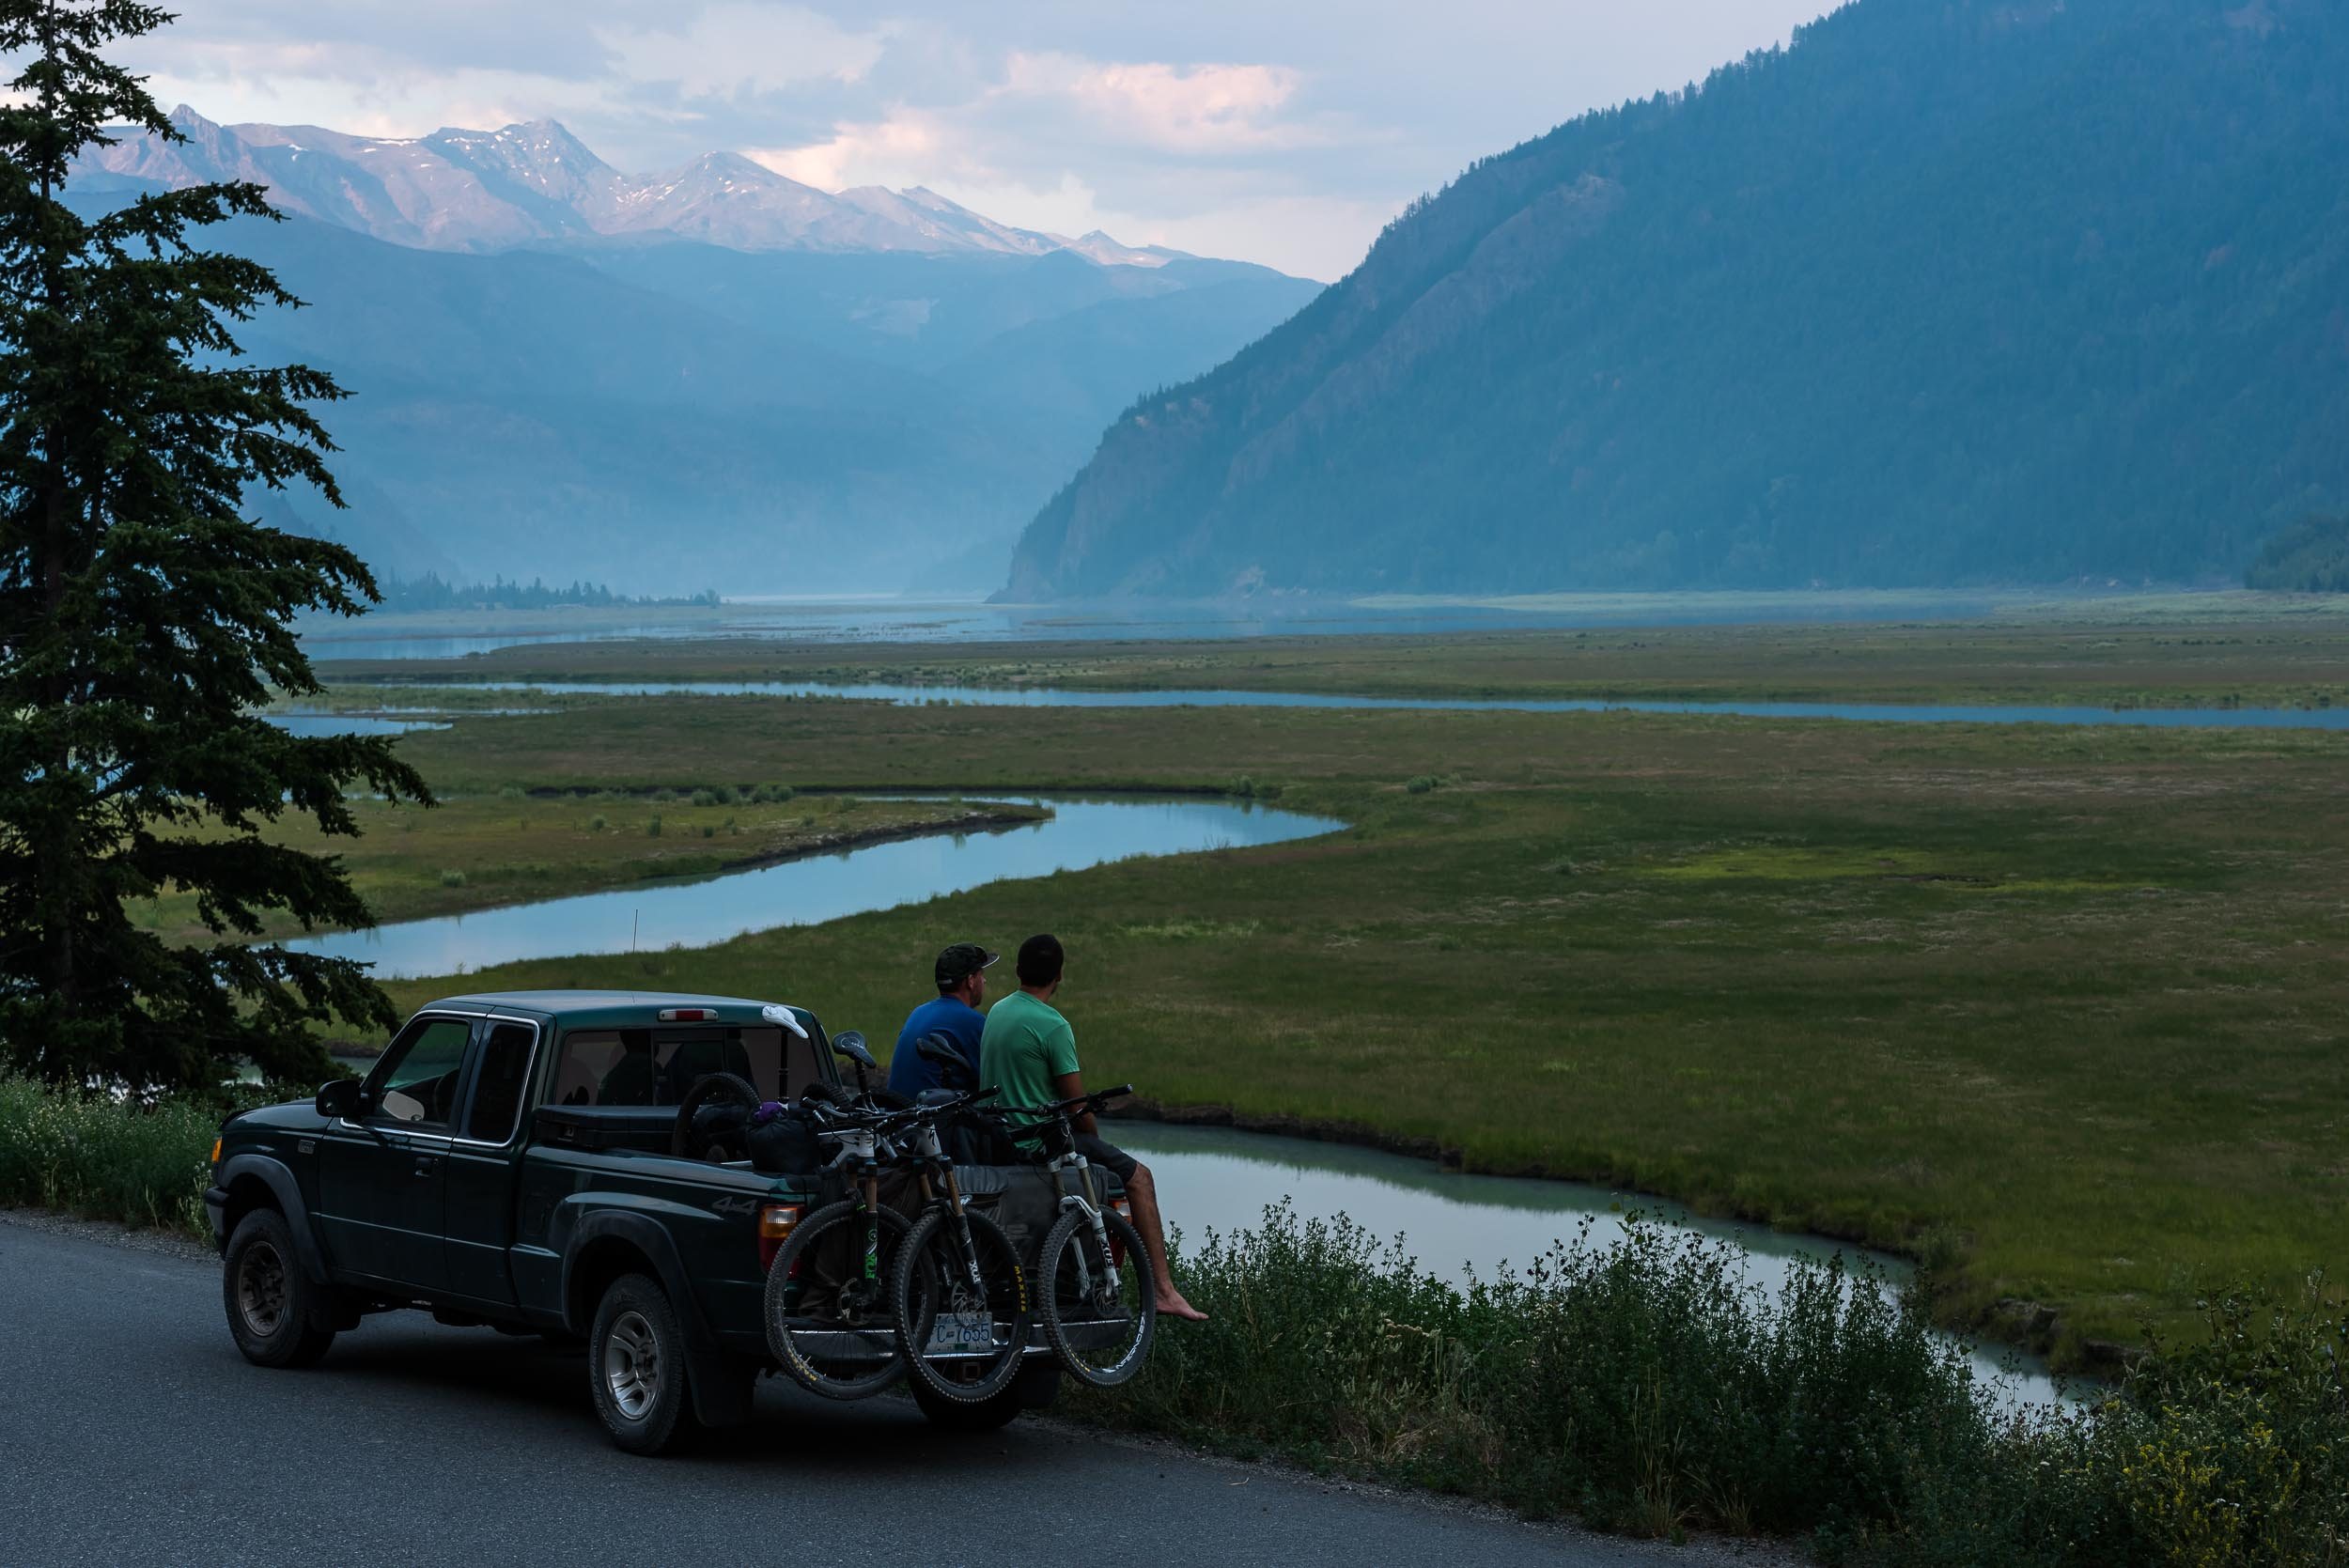 Mountain bikers sitting on a truck on the side of the road near Gold Bridge in the Bridge River Valley. Credit: BC/Reuben Krabbe